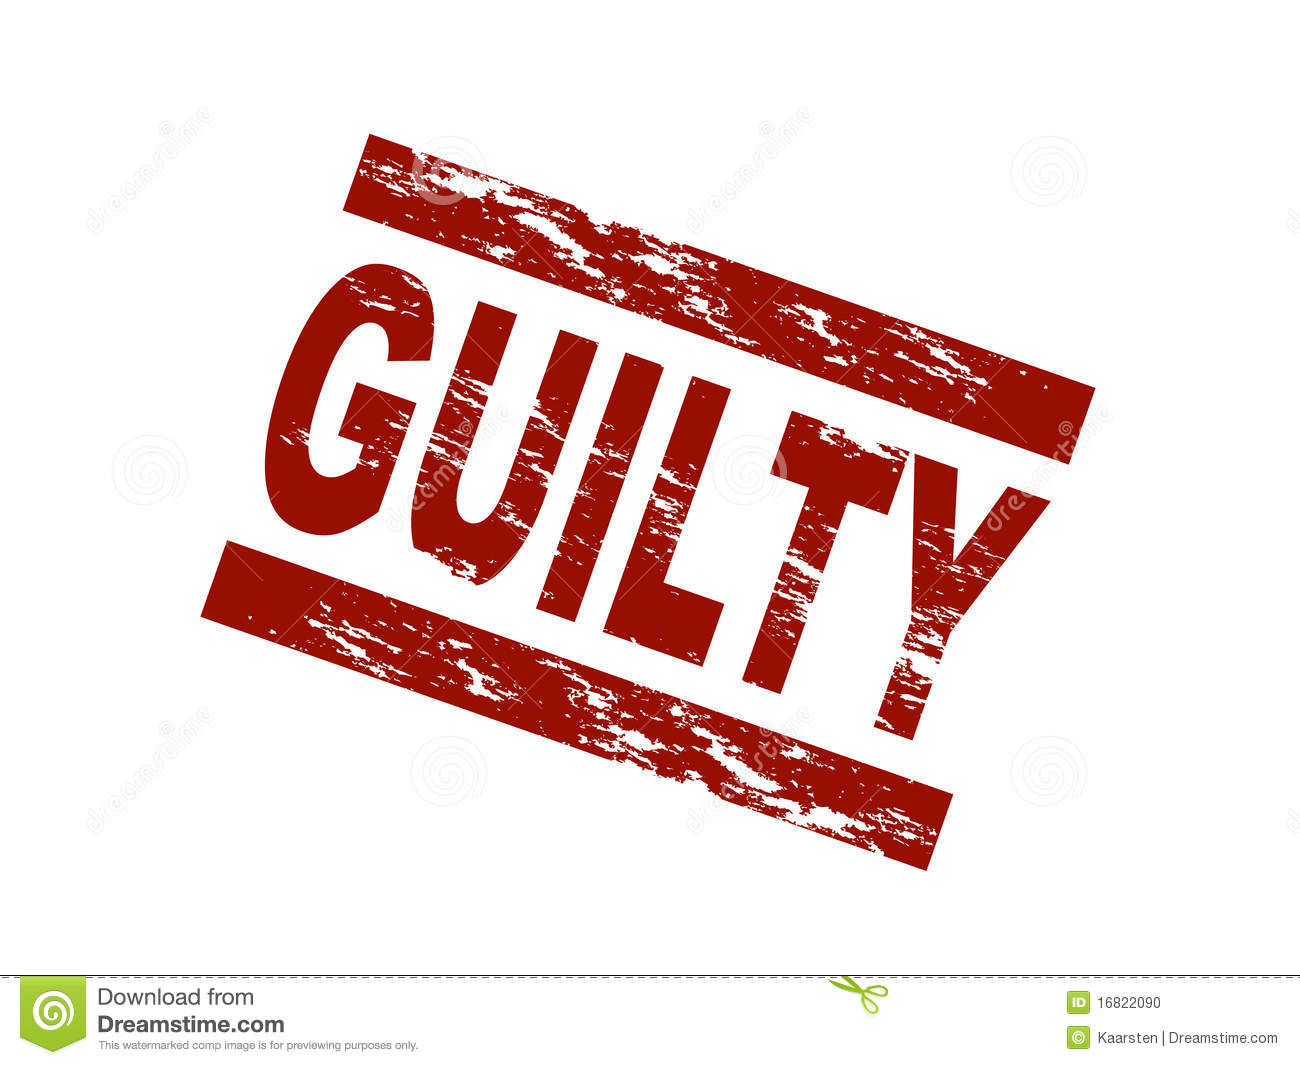 Stylized red stamp shows the term guilty. All on white background.